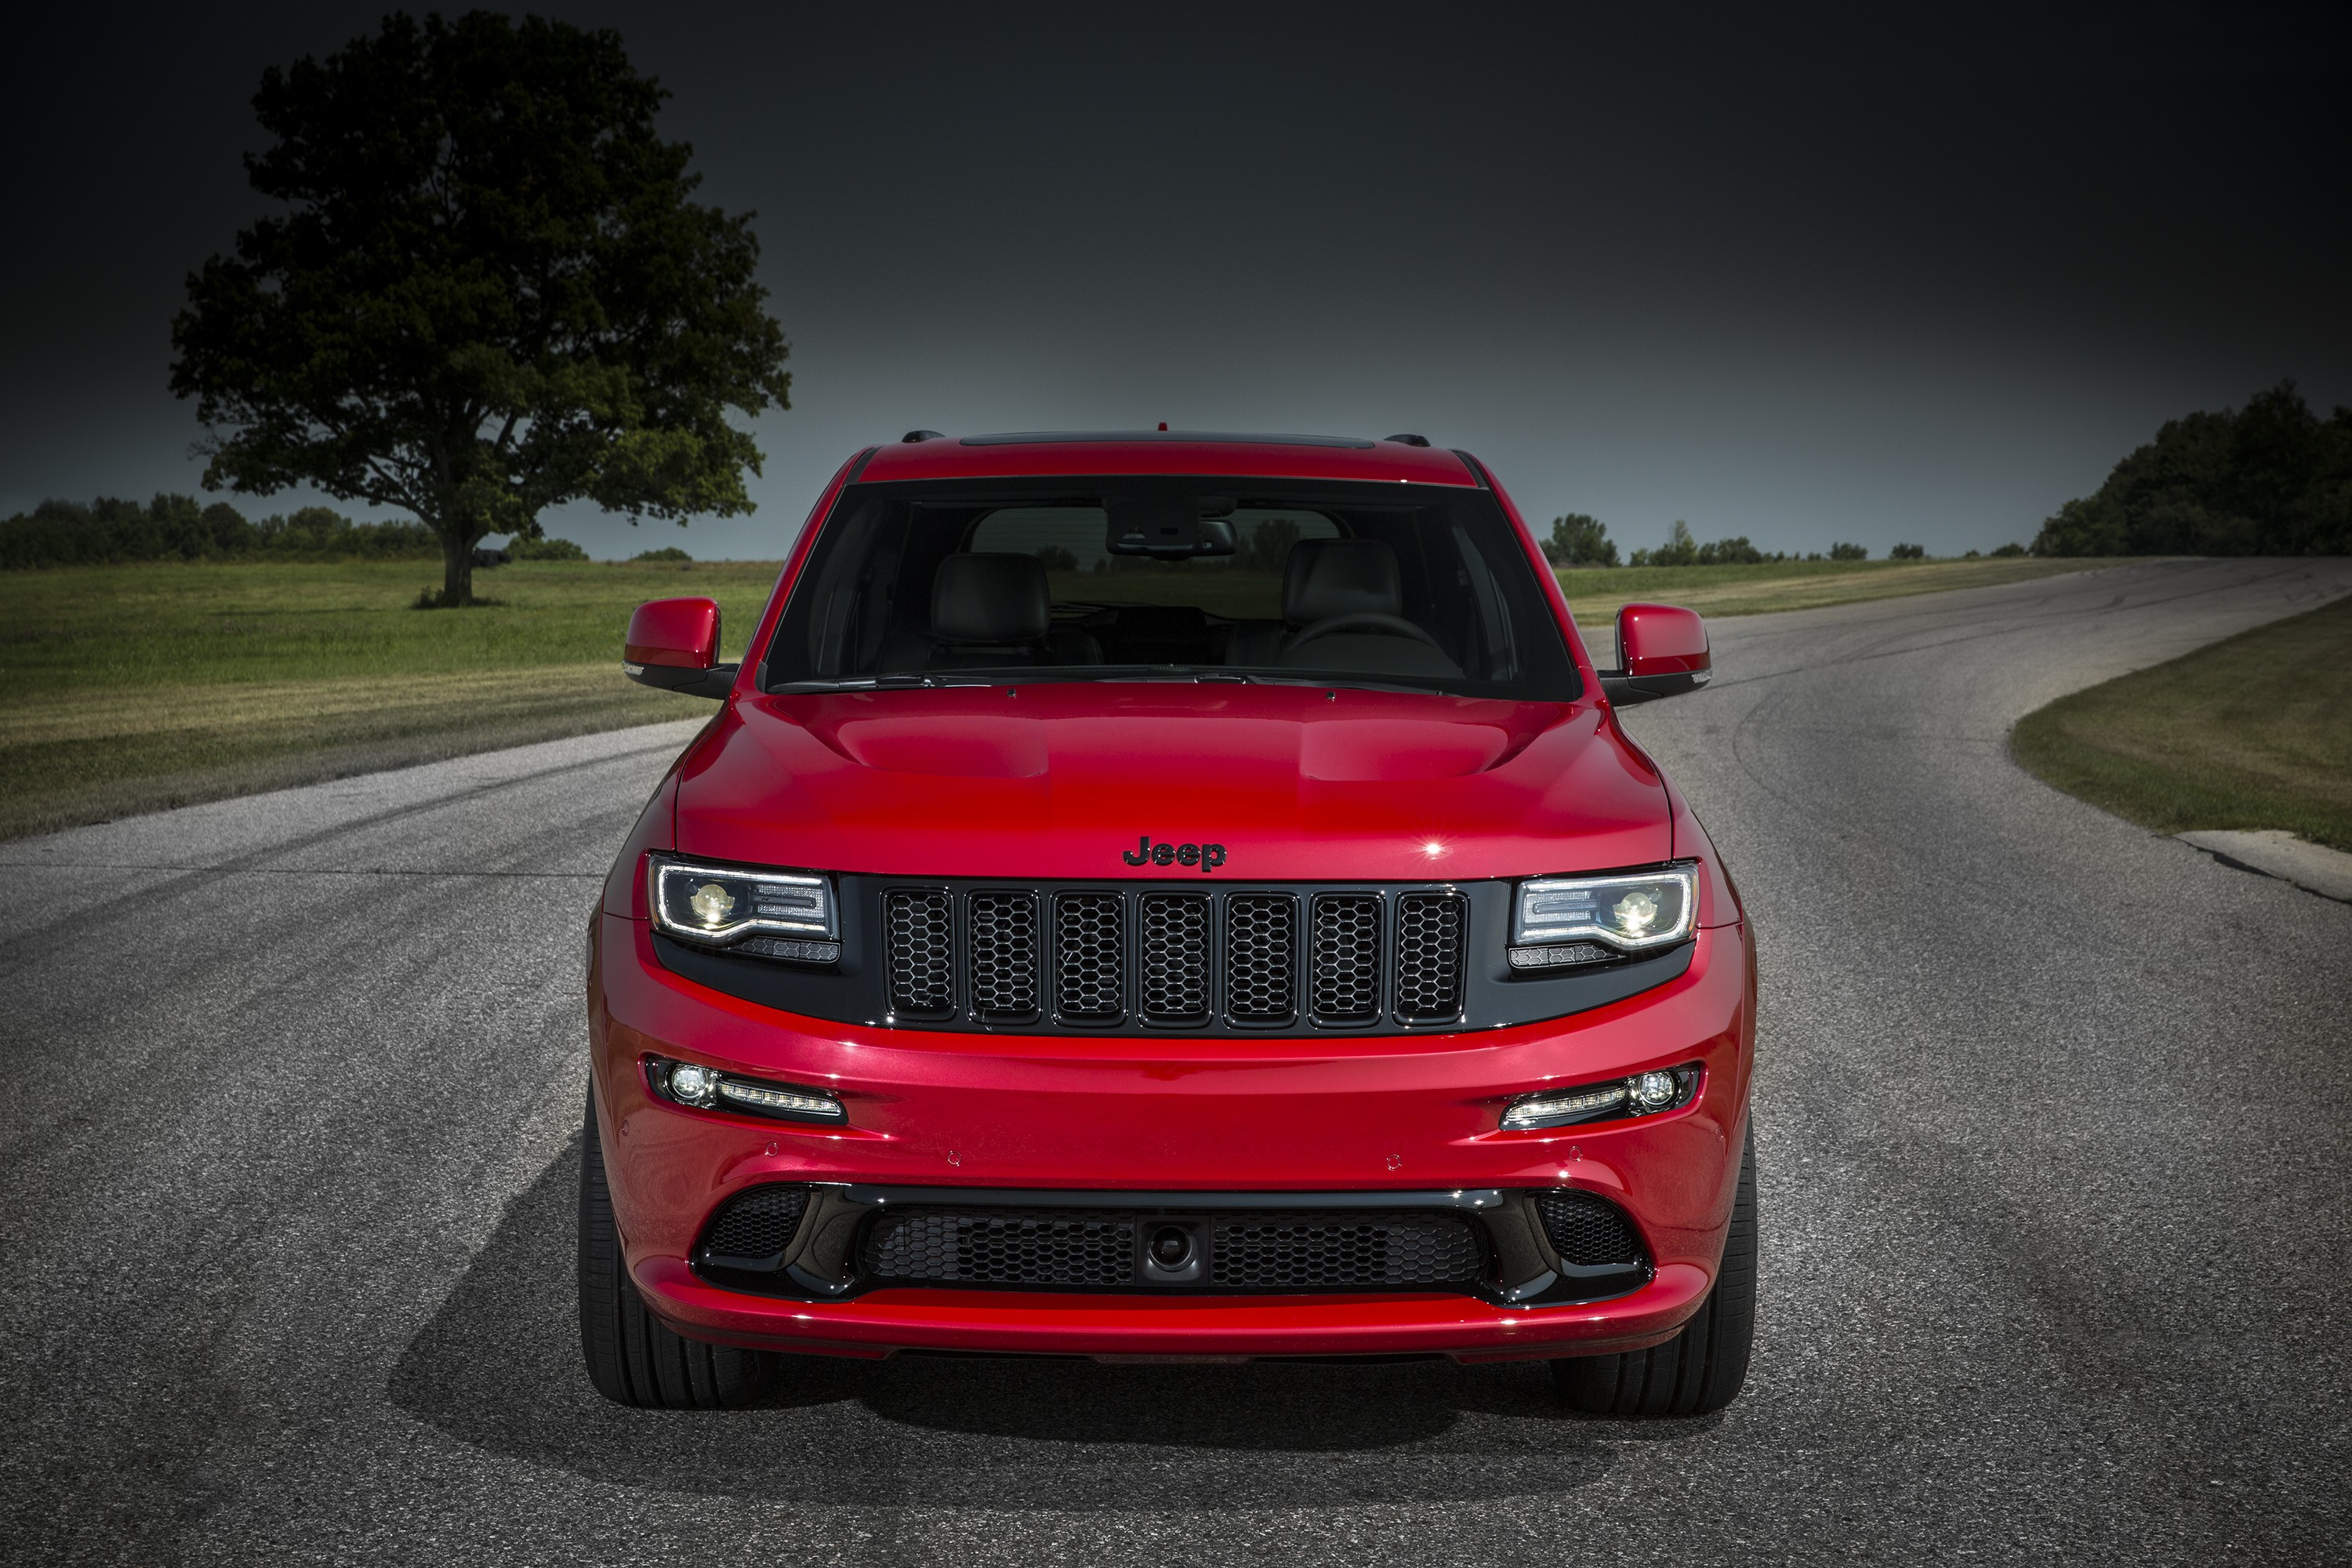 2015 Grand Cherokee Srt >> 2015 Jeep Grand Cherokee SRT Red Vapor Now Available to Order in the UK - autoevolution